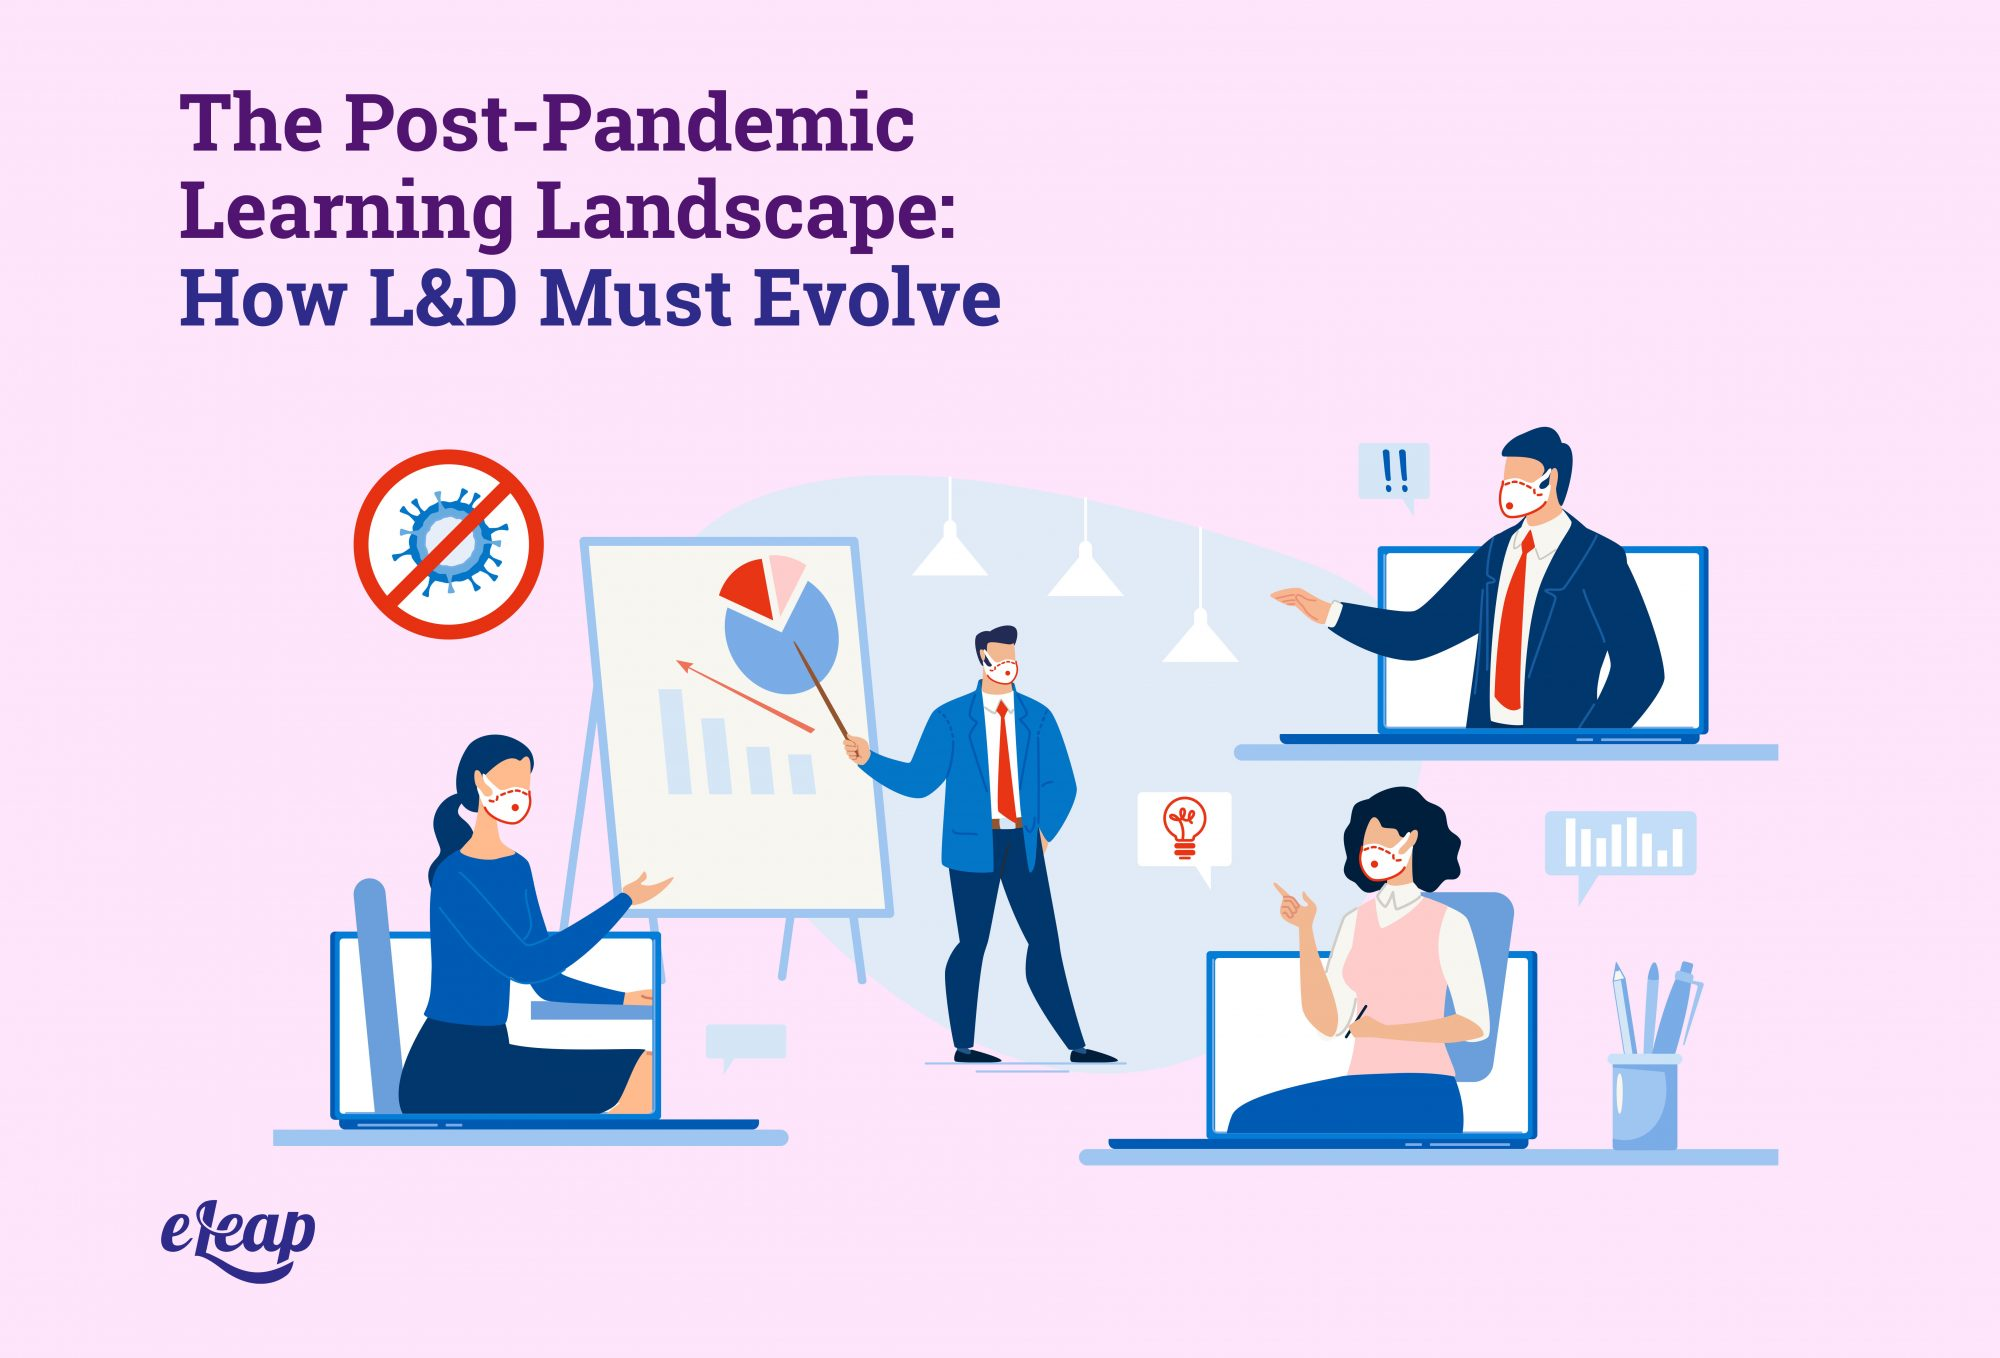 The Post-Pandemic Learning Landscape: How L&D Must Evolve